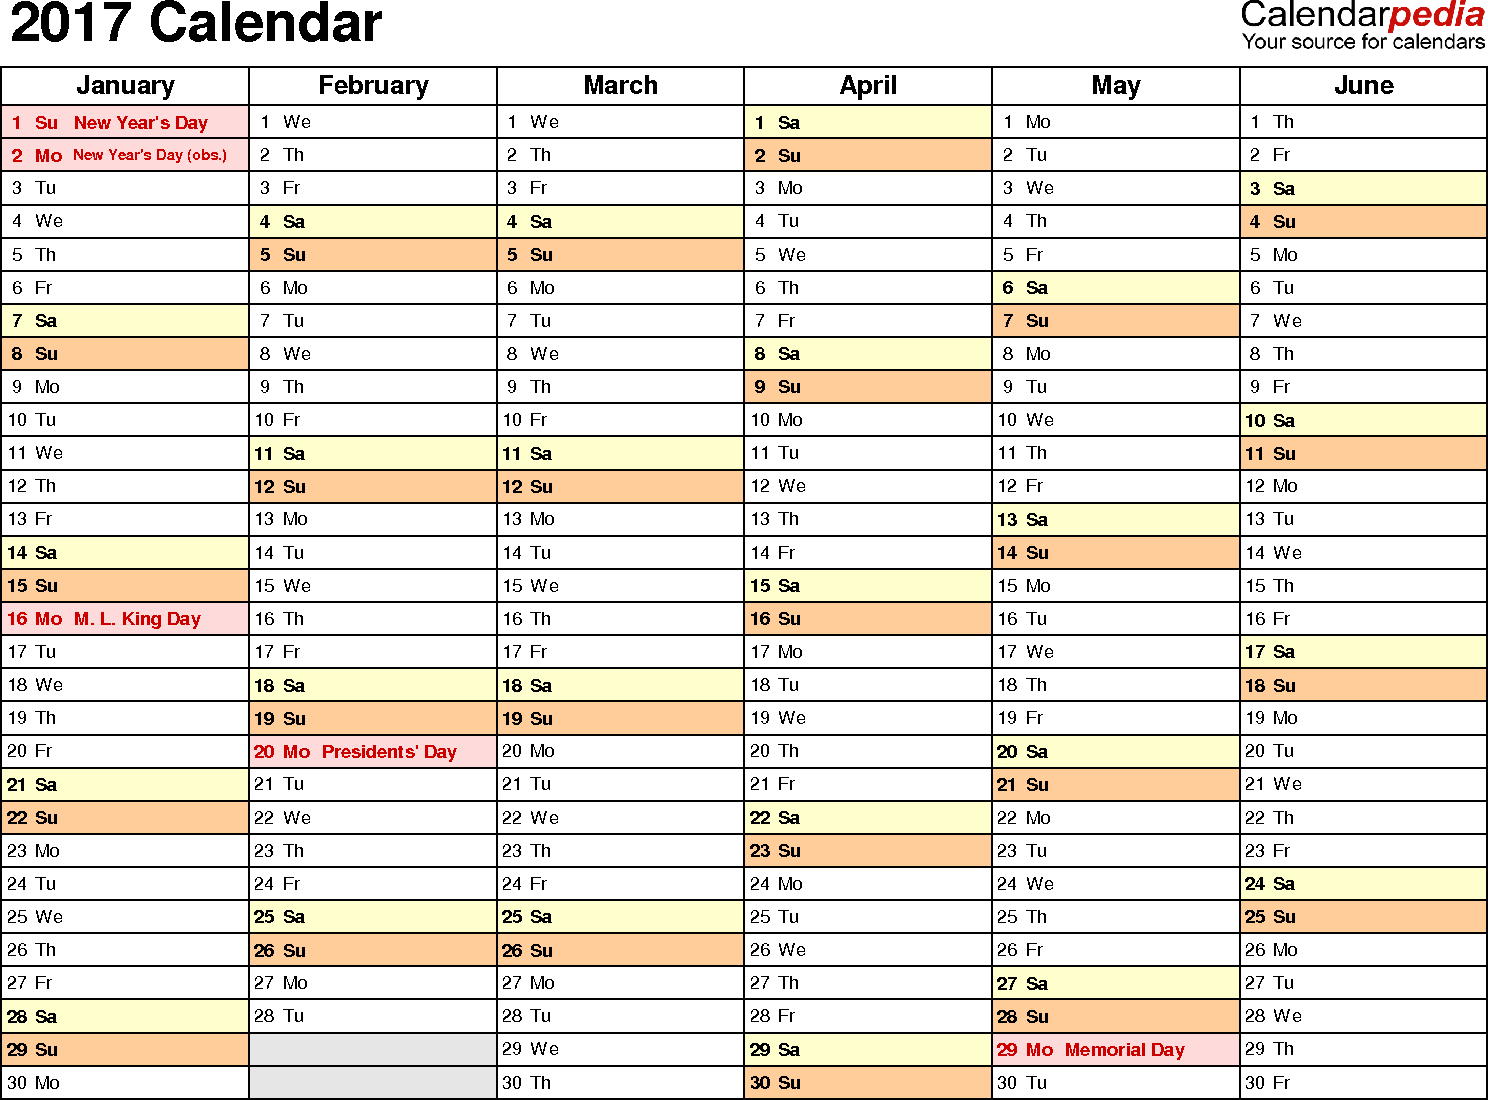 Ediblewildsus  Stunning  Calendar  Download  Free Printable Excel Templates Xls With Foxy Template   Calendar For Excel Months Horizontally  Pages Landscape Orientation With Extraordinary Calculate Variance Excel Also Expense Template Excel In Addition How To Do Data Validation In Excel And How To Use Pivot Tables Excel  As Well As Color Function In Excel Additionally Excel Probability Density Function From Calendarpediacom With Ediblewildsus  Foxy  Calendar  Download  Free Printable Excel Templates Xls With Extraordinary Template   Calendar For Excel Months Horizontally  Pages Landscape Orientation And Stunning Calculate Variance Excel Also Expense Template Excel In Addition How To Do Data Validation In Excel From Calendarpediacom